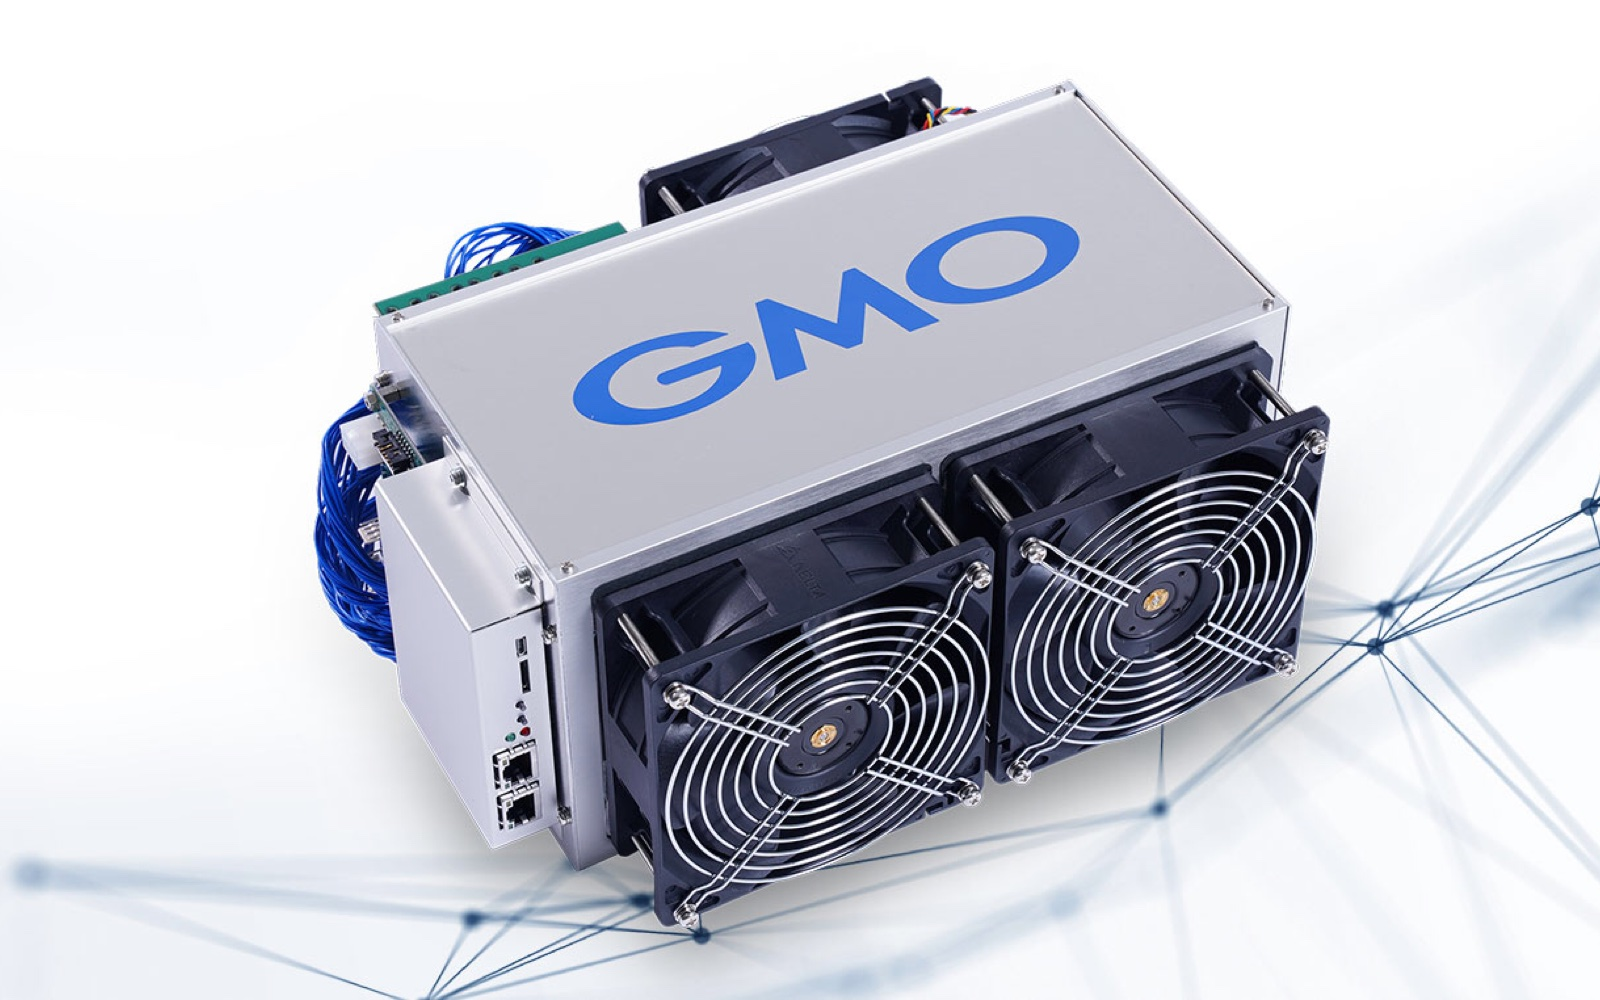 Best Bitcoin Mining Hardware in 2019: Prepare For Super-Powerful